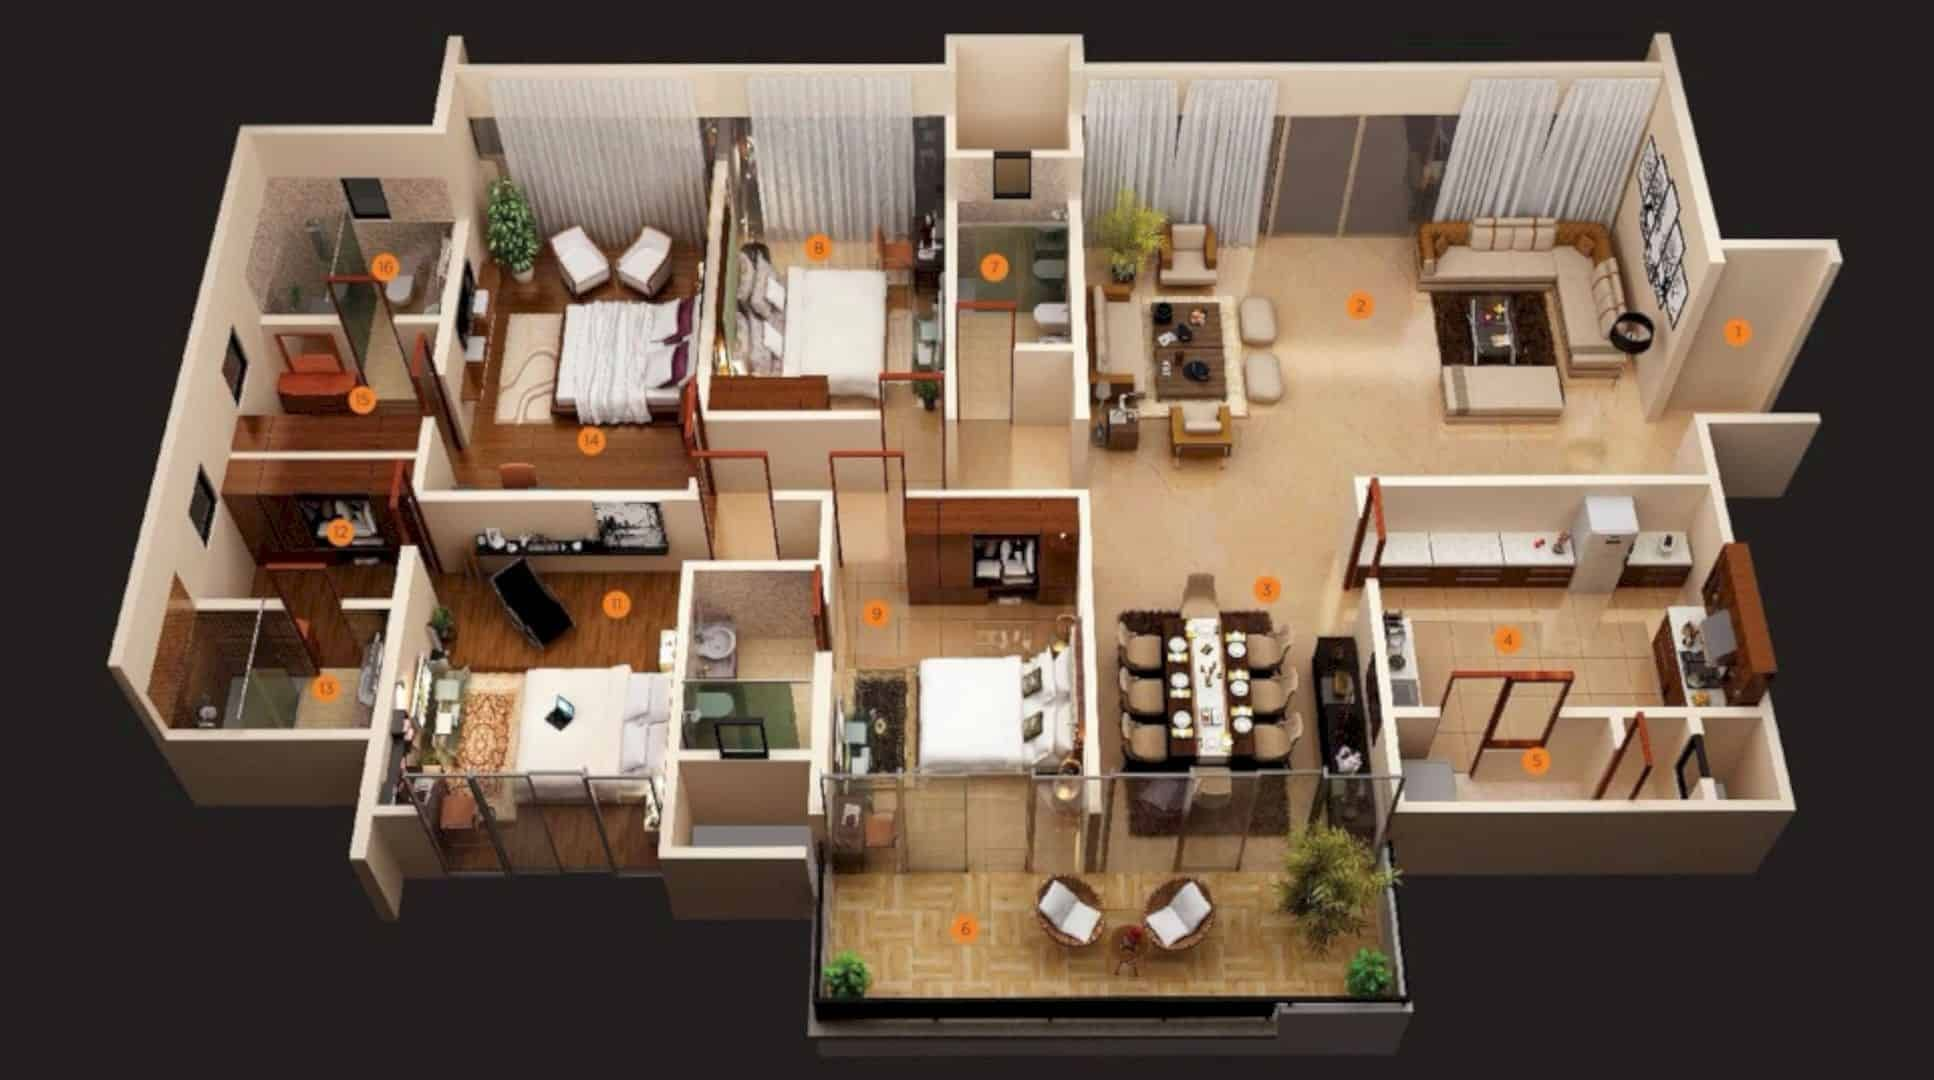 Why Do We Need 3d House Plan Before Starting The Project 3d House Plans Four Bedroom House Plans 4 Bedroom House Designs